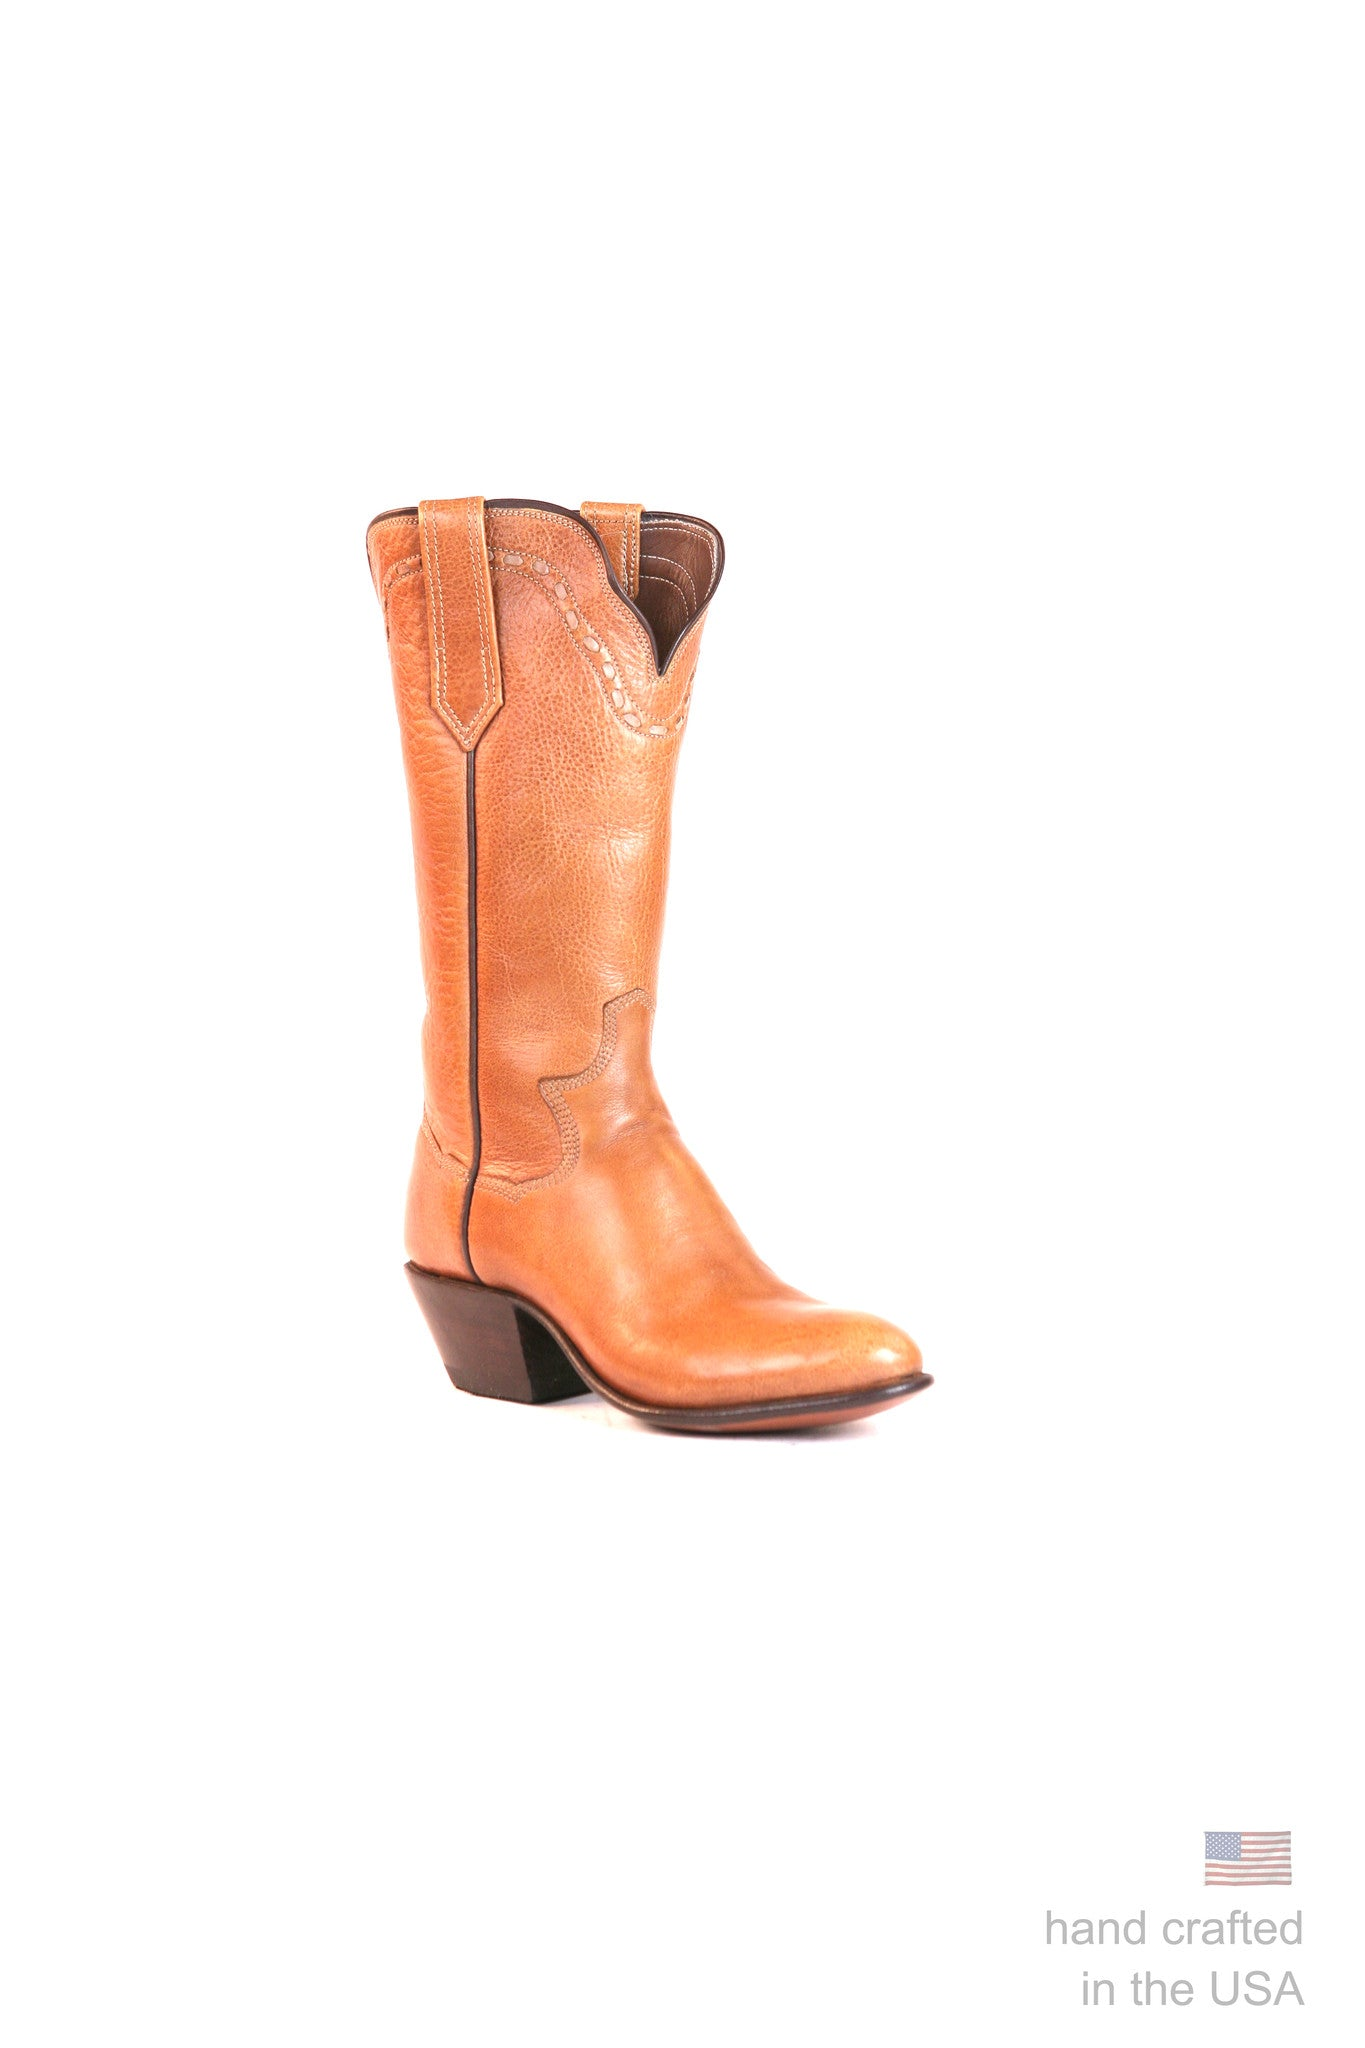 Singles: Boot 0083: Size 4A